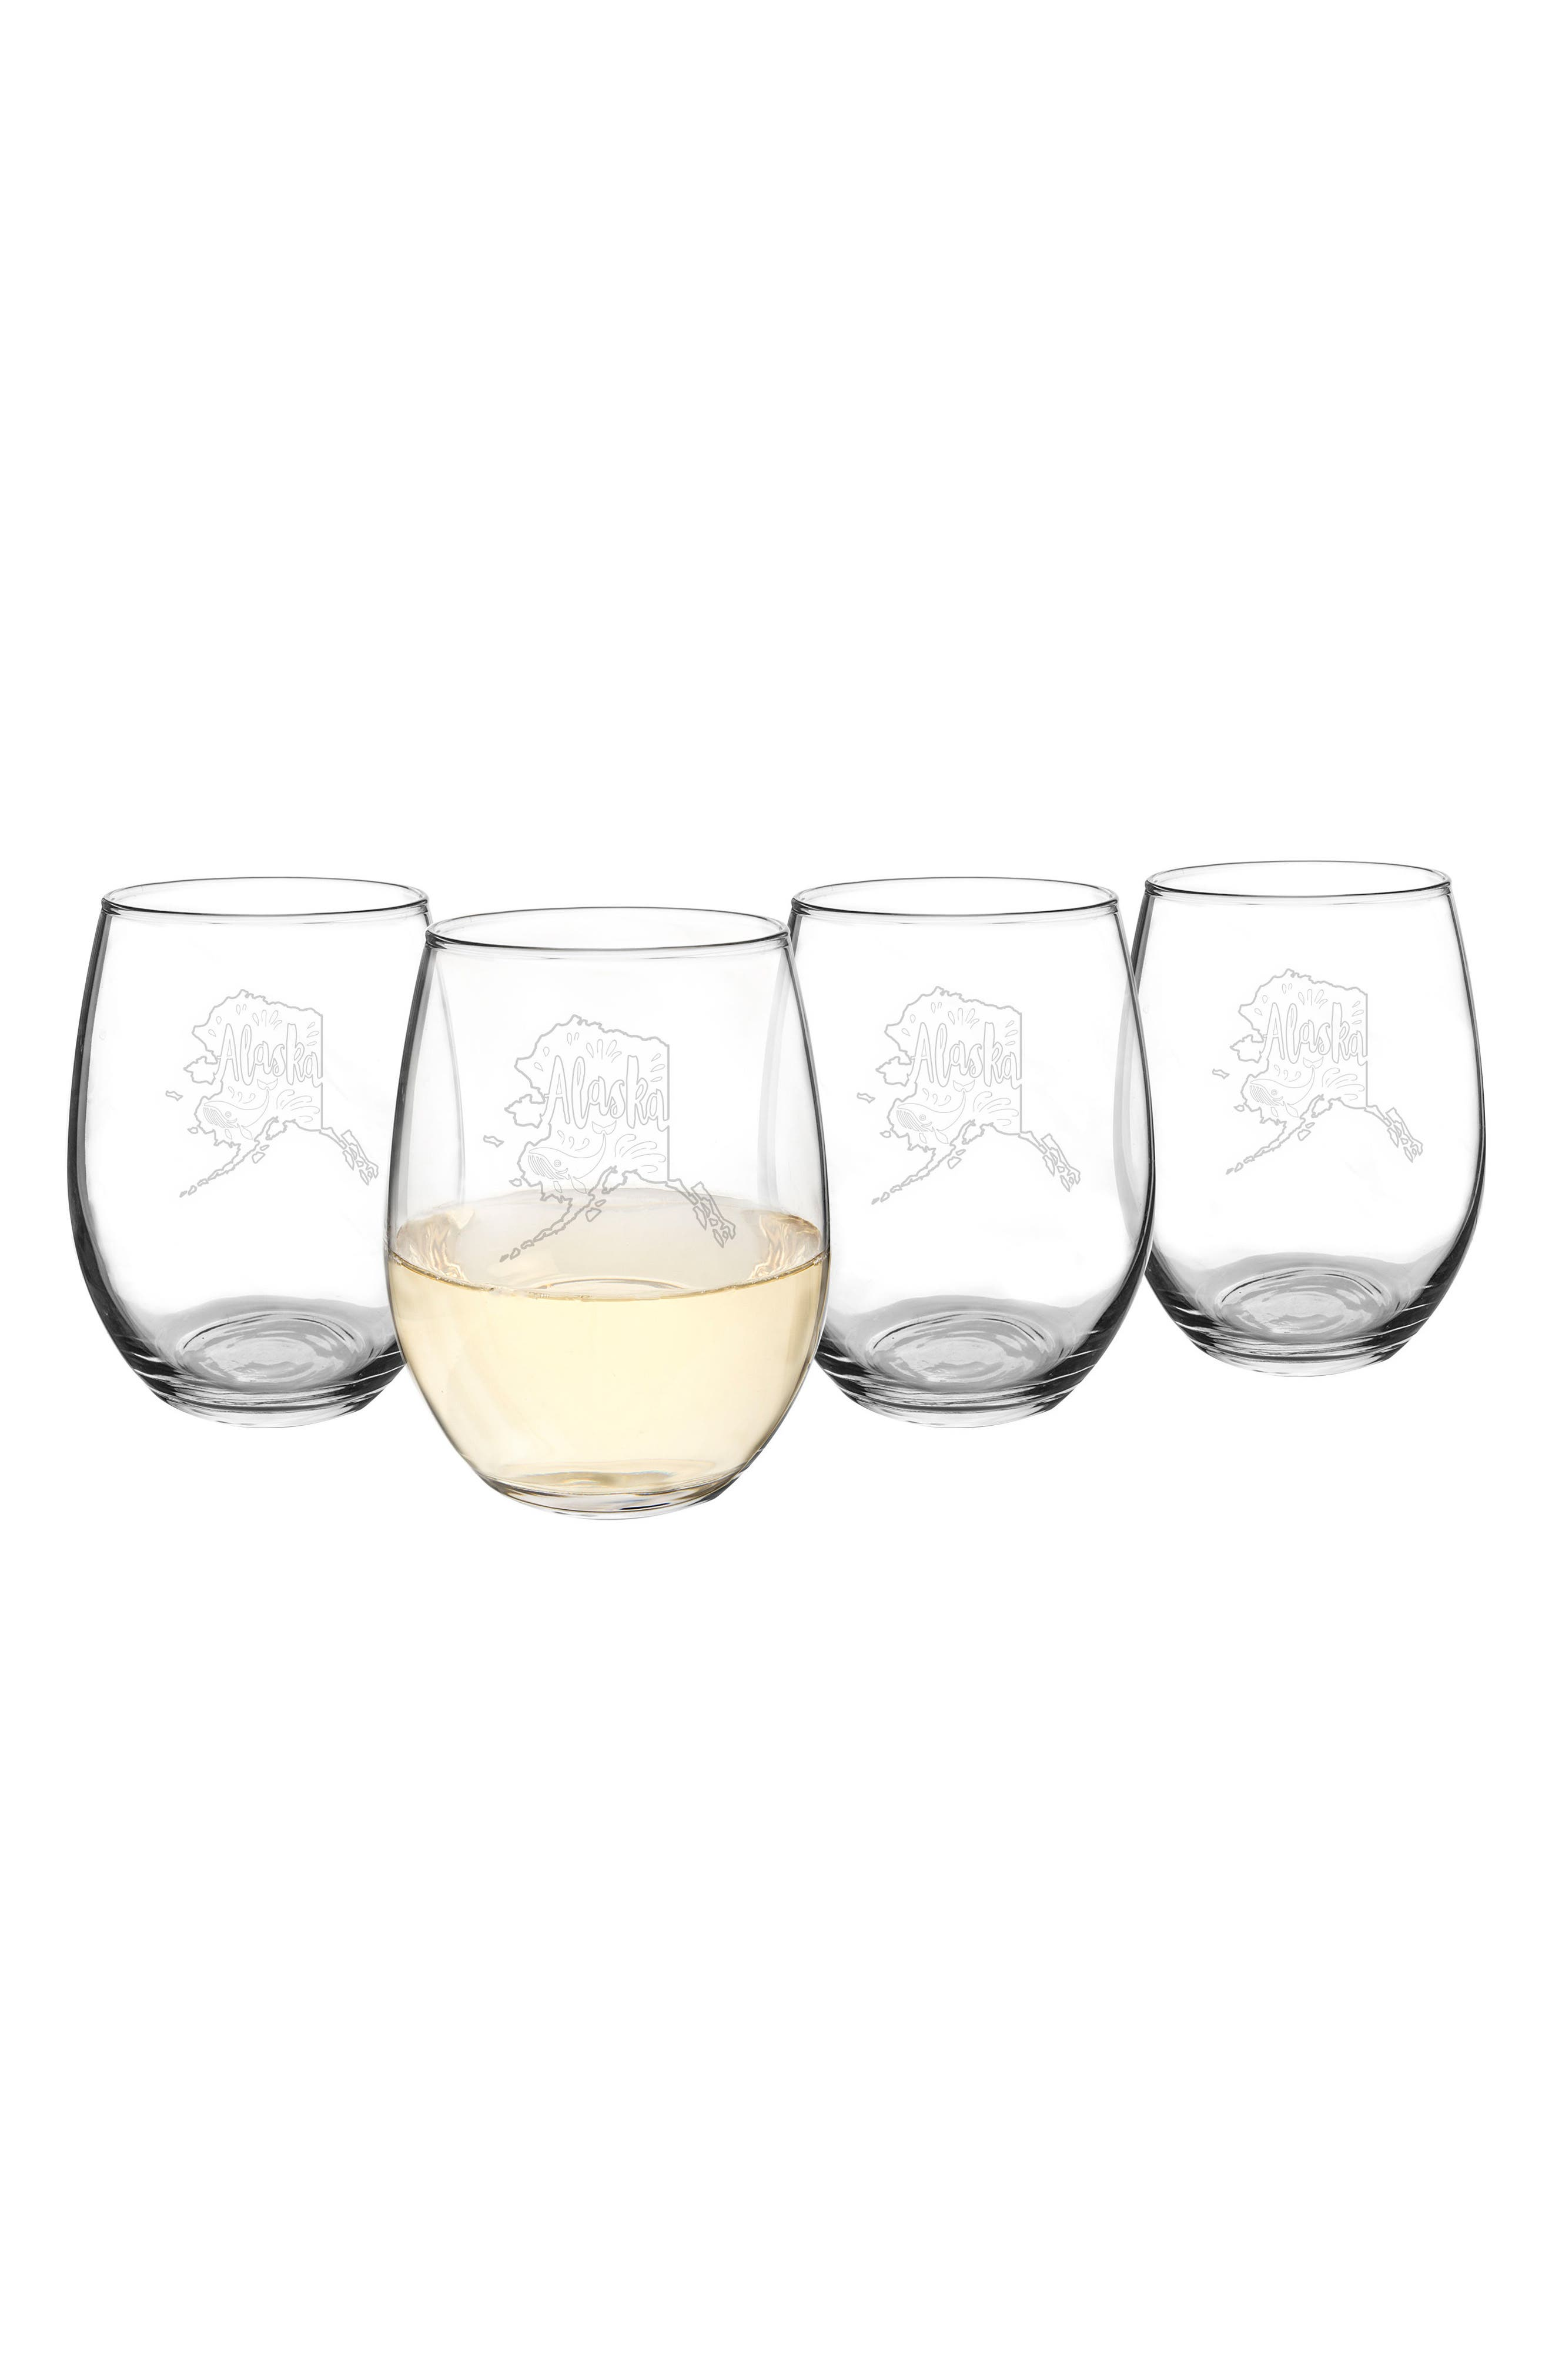 State Set of 4 Stemless Wine Glasses,                         Main,                         color, 100